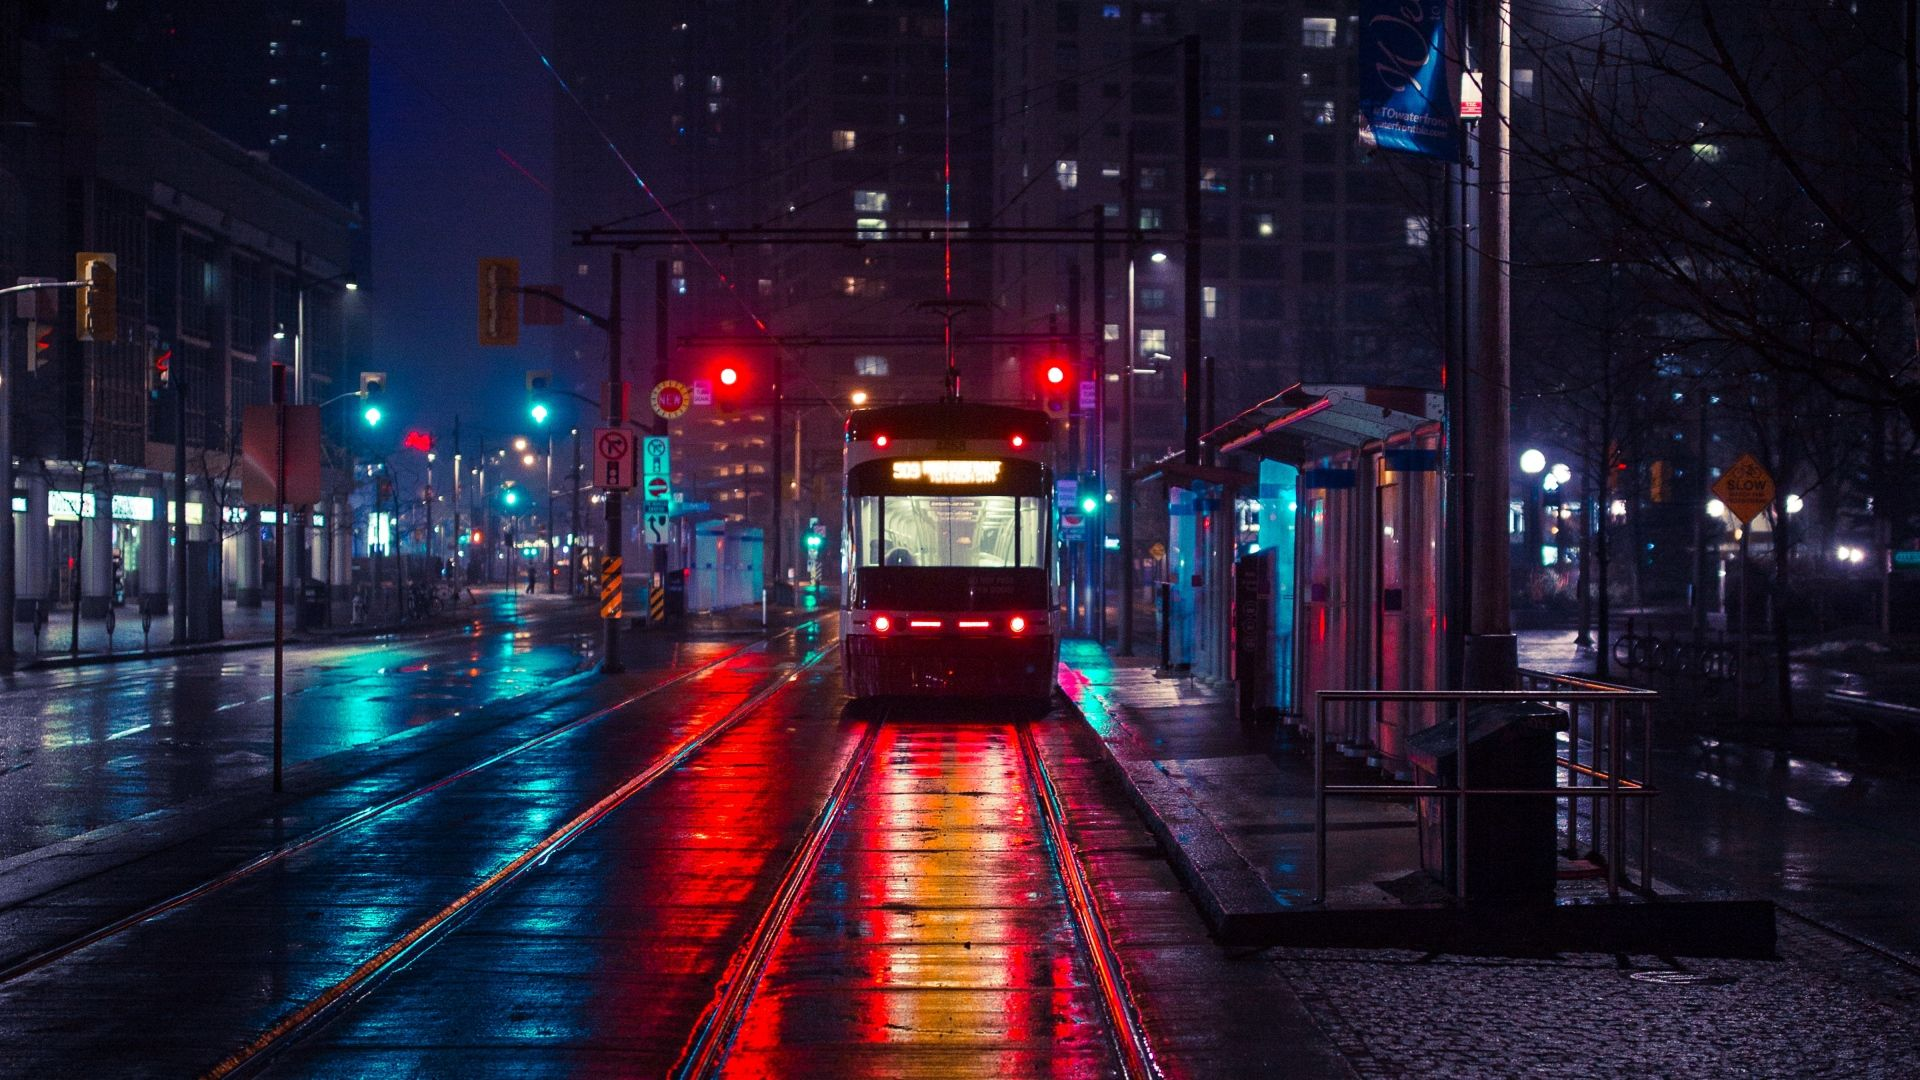 1920x1080 Wallpaper Trolley Stop City Evening Lighting City Wallpaper Aesthetic Desktop Wallpaper Laptop Wallpaper Desktop Wallpapers